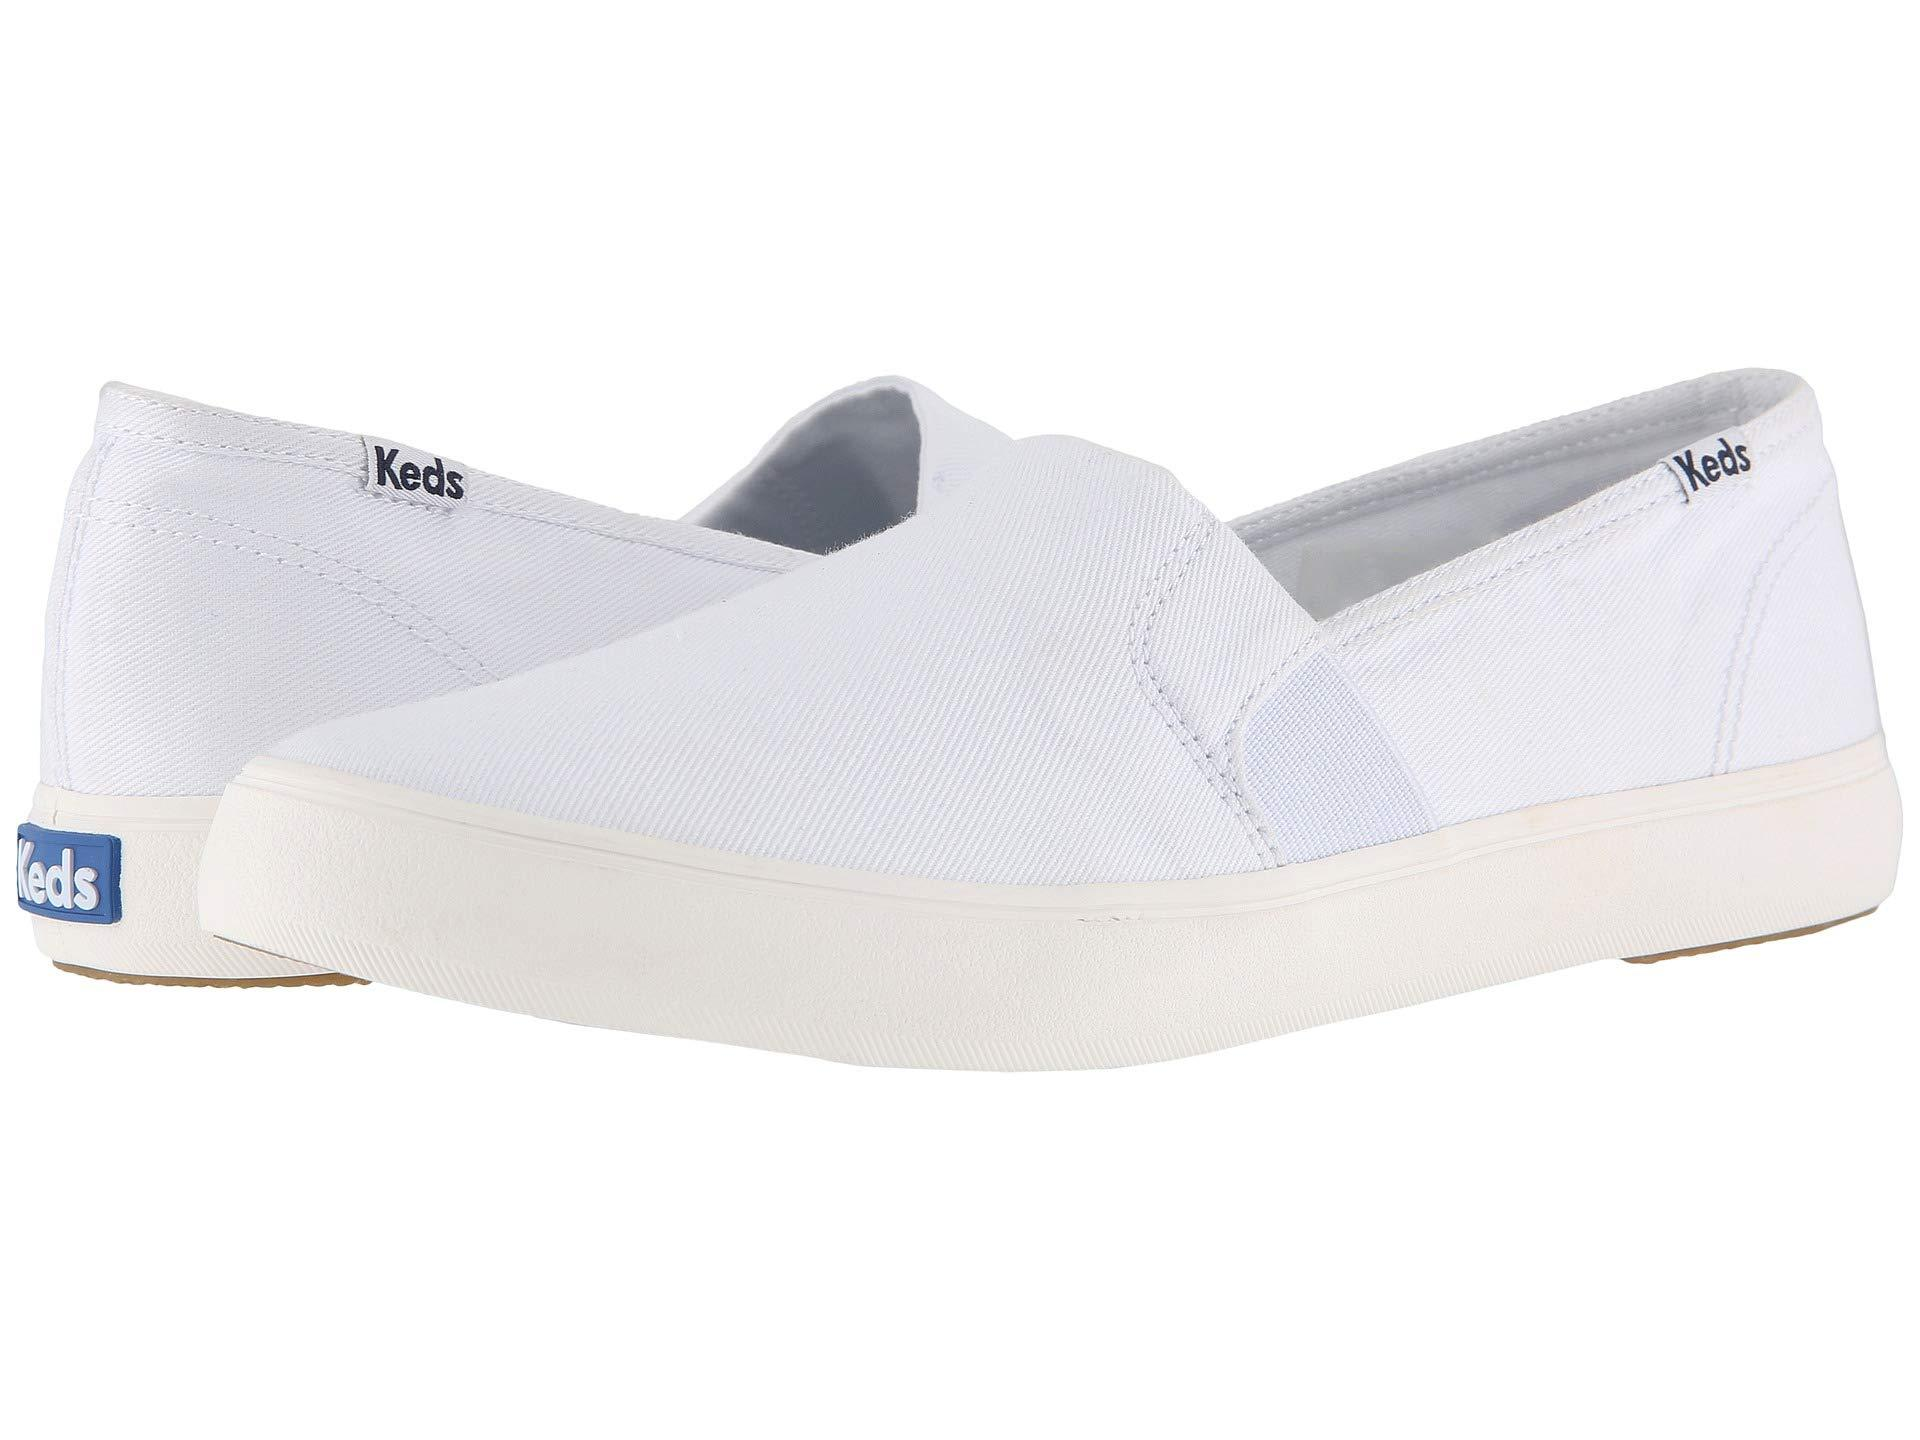 e3d6a90bb33 Lyst - Keds Clipper Washed Solids (navy) Women s Slip On Shoes in White